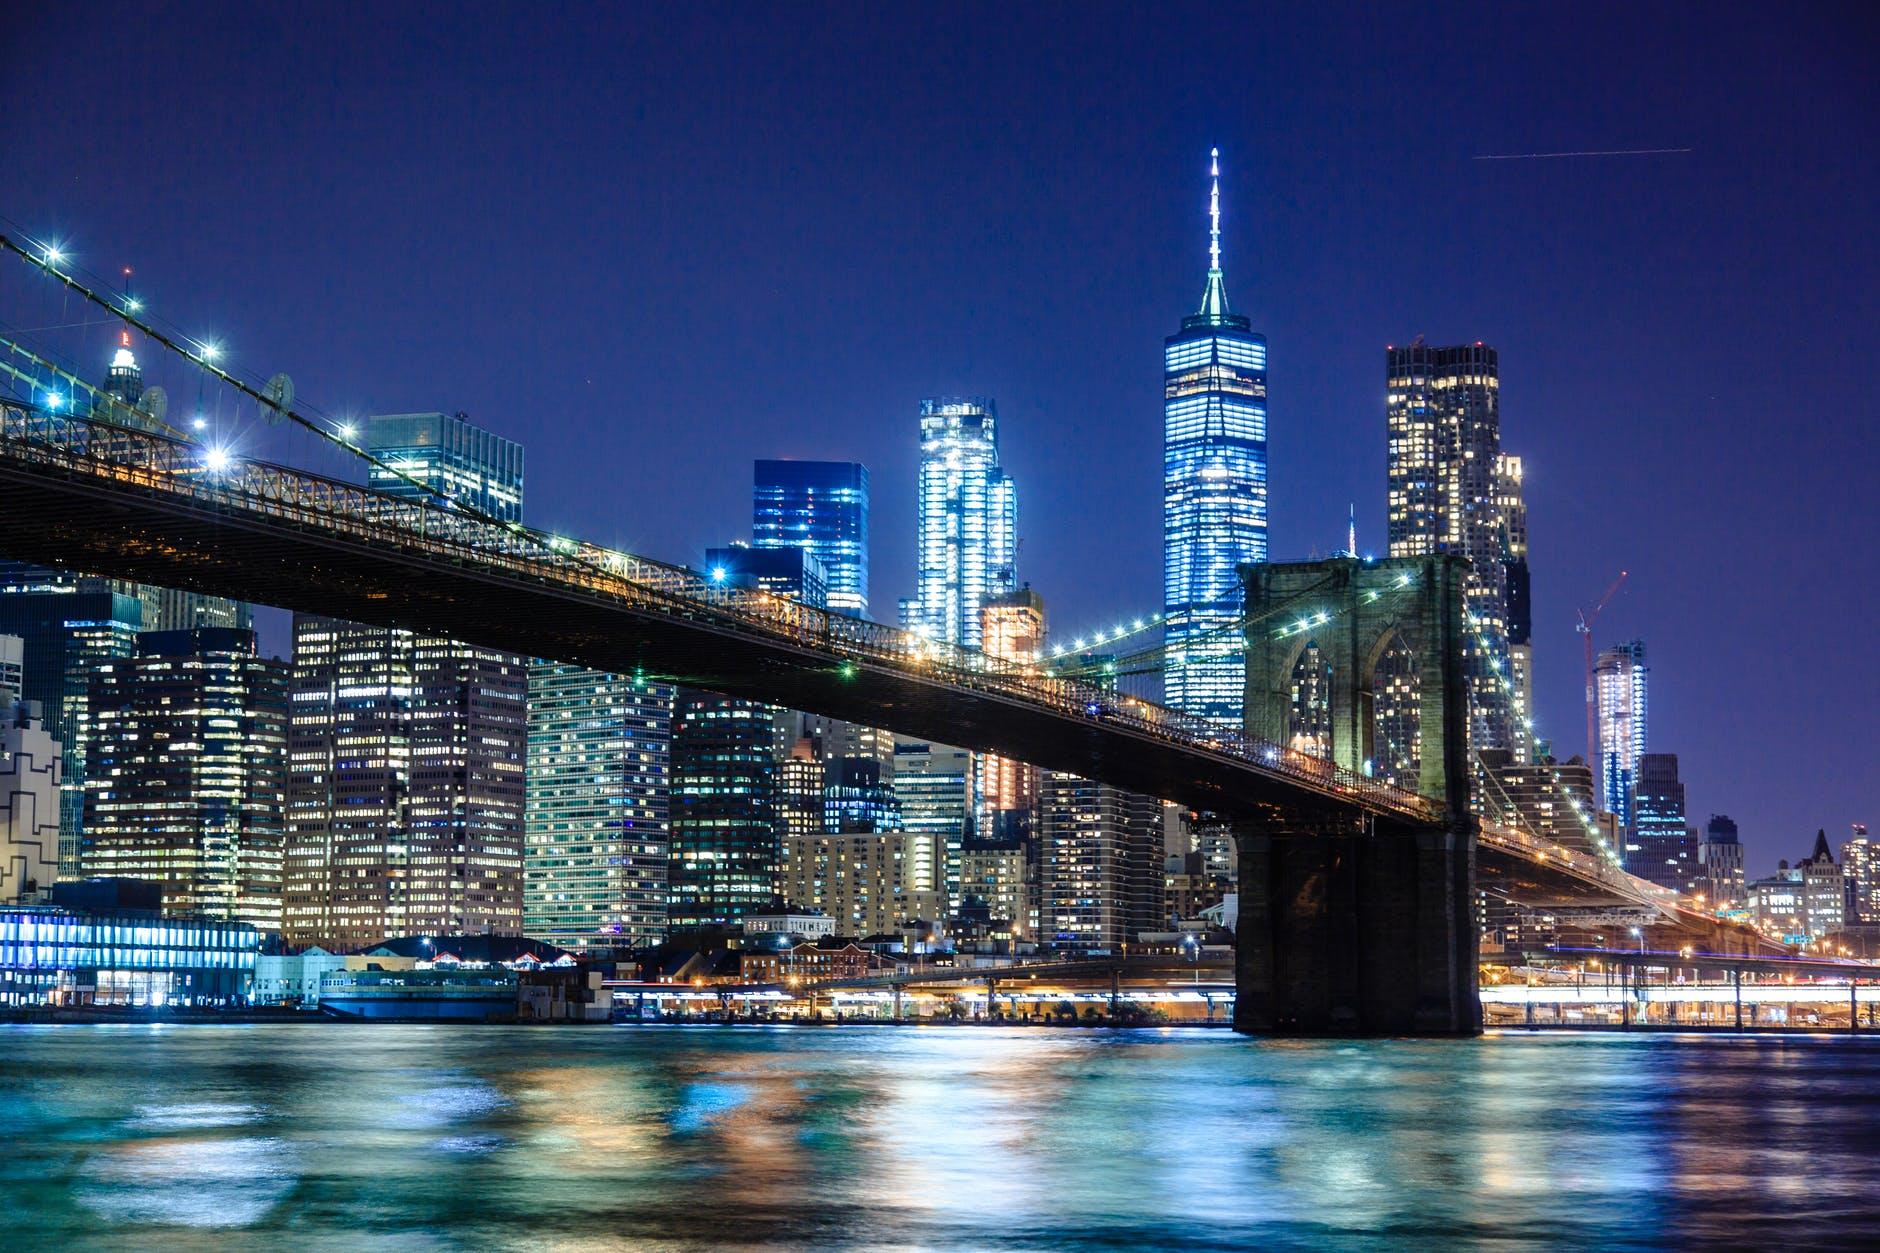 A limousine tour of Brooklyn - a trip along the historic Brooklyn Bridge